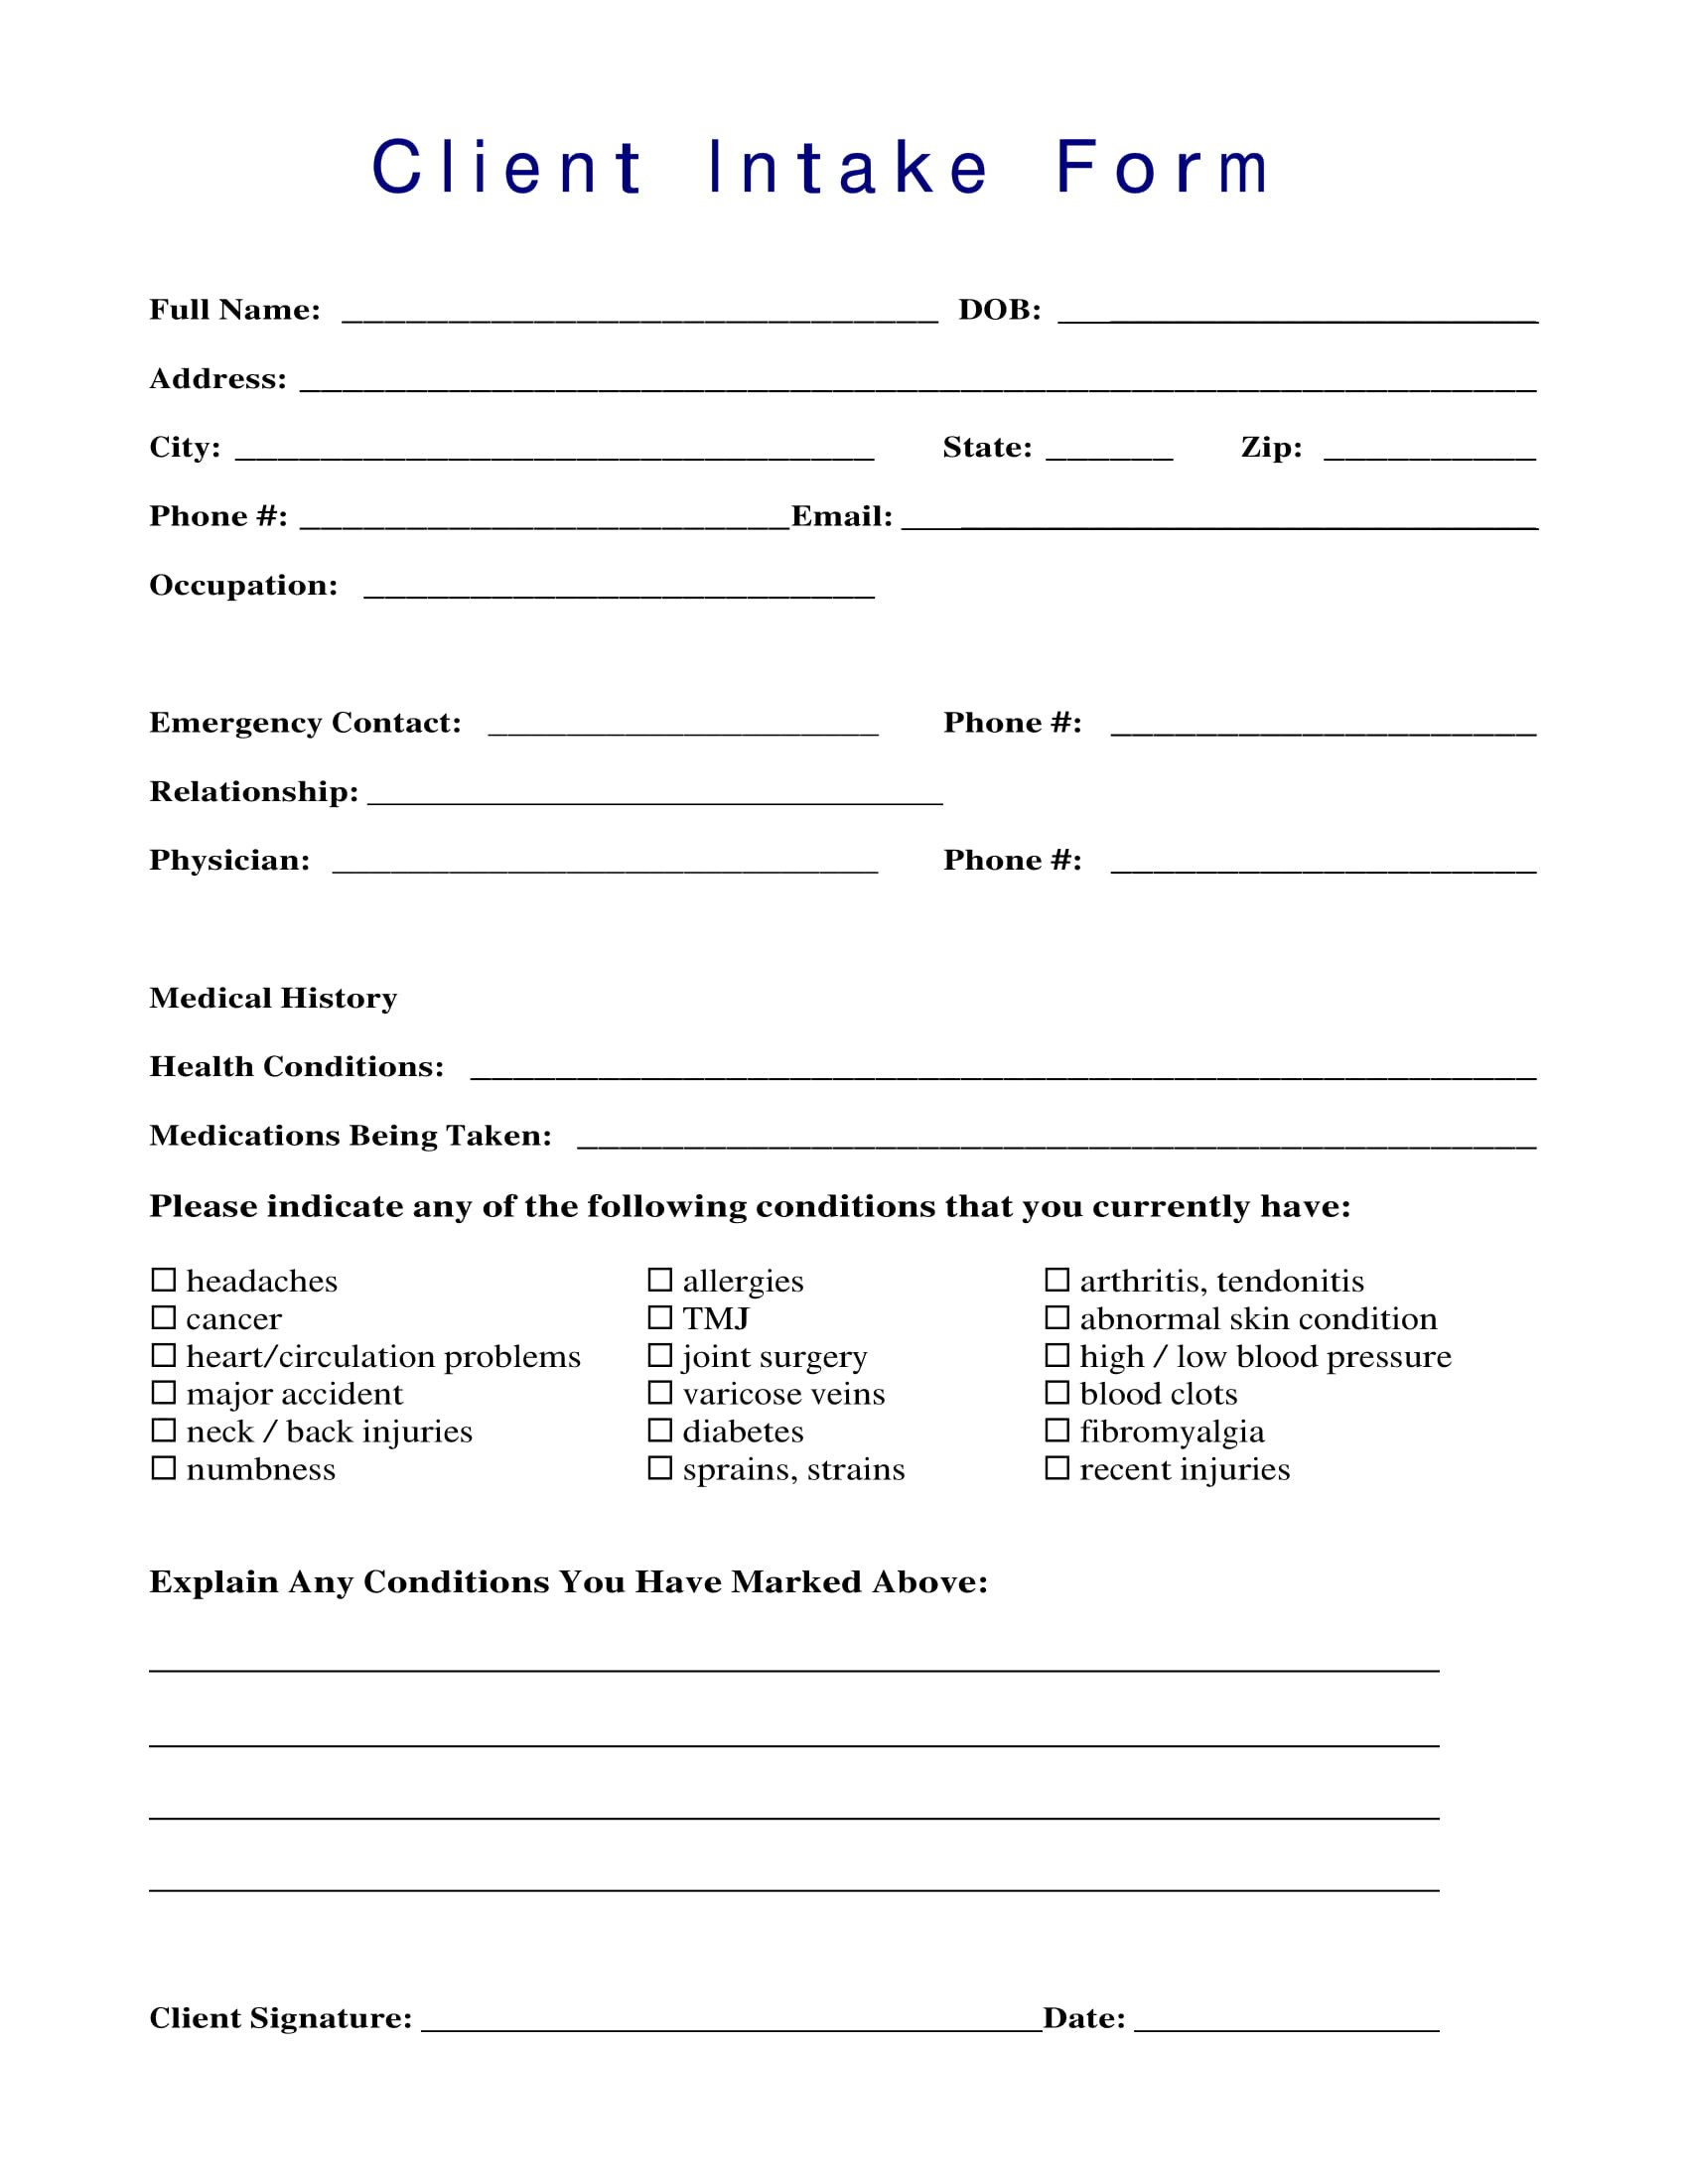 Intake form Template Word 13 Client Intake forms Pdf Doc